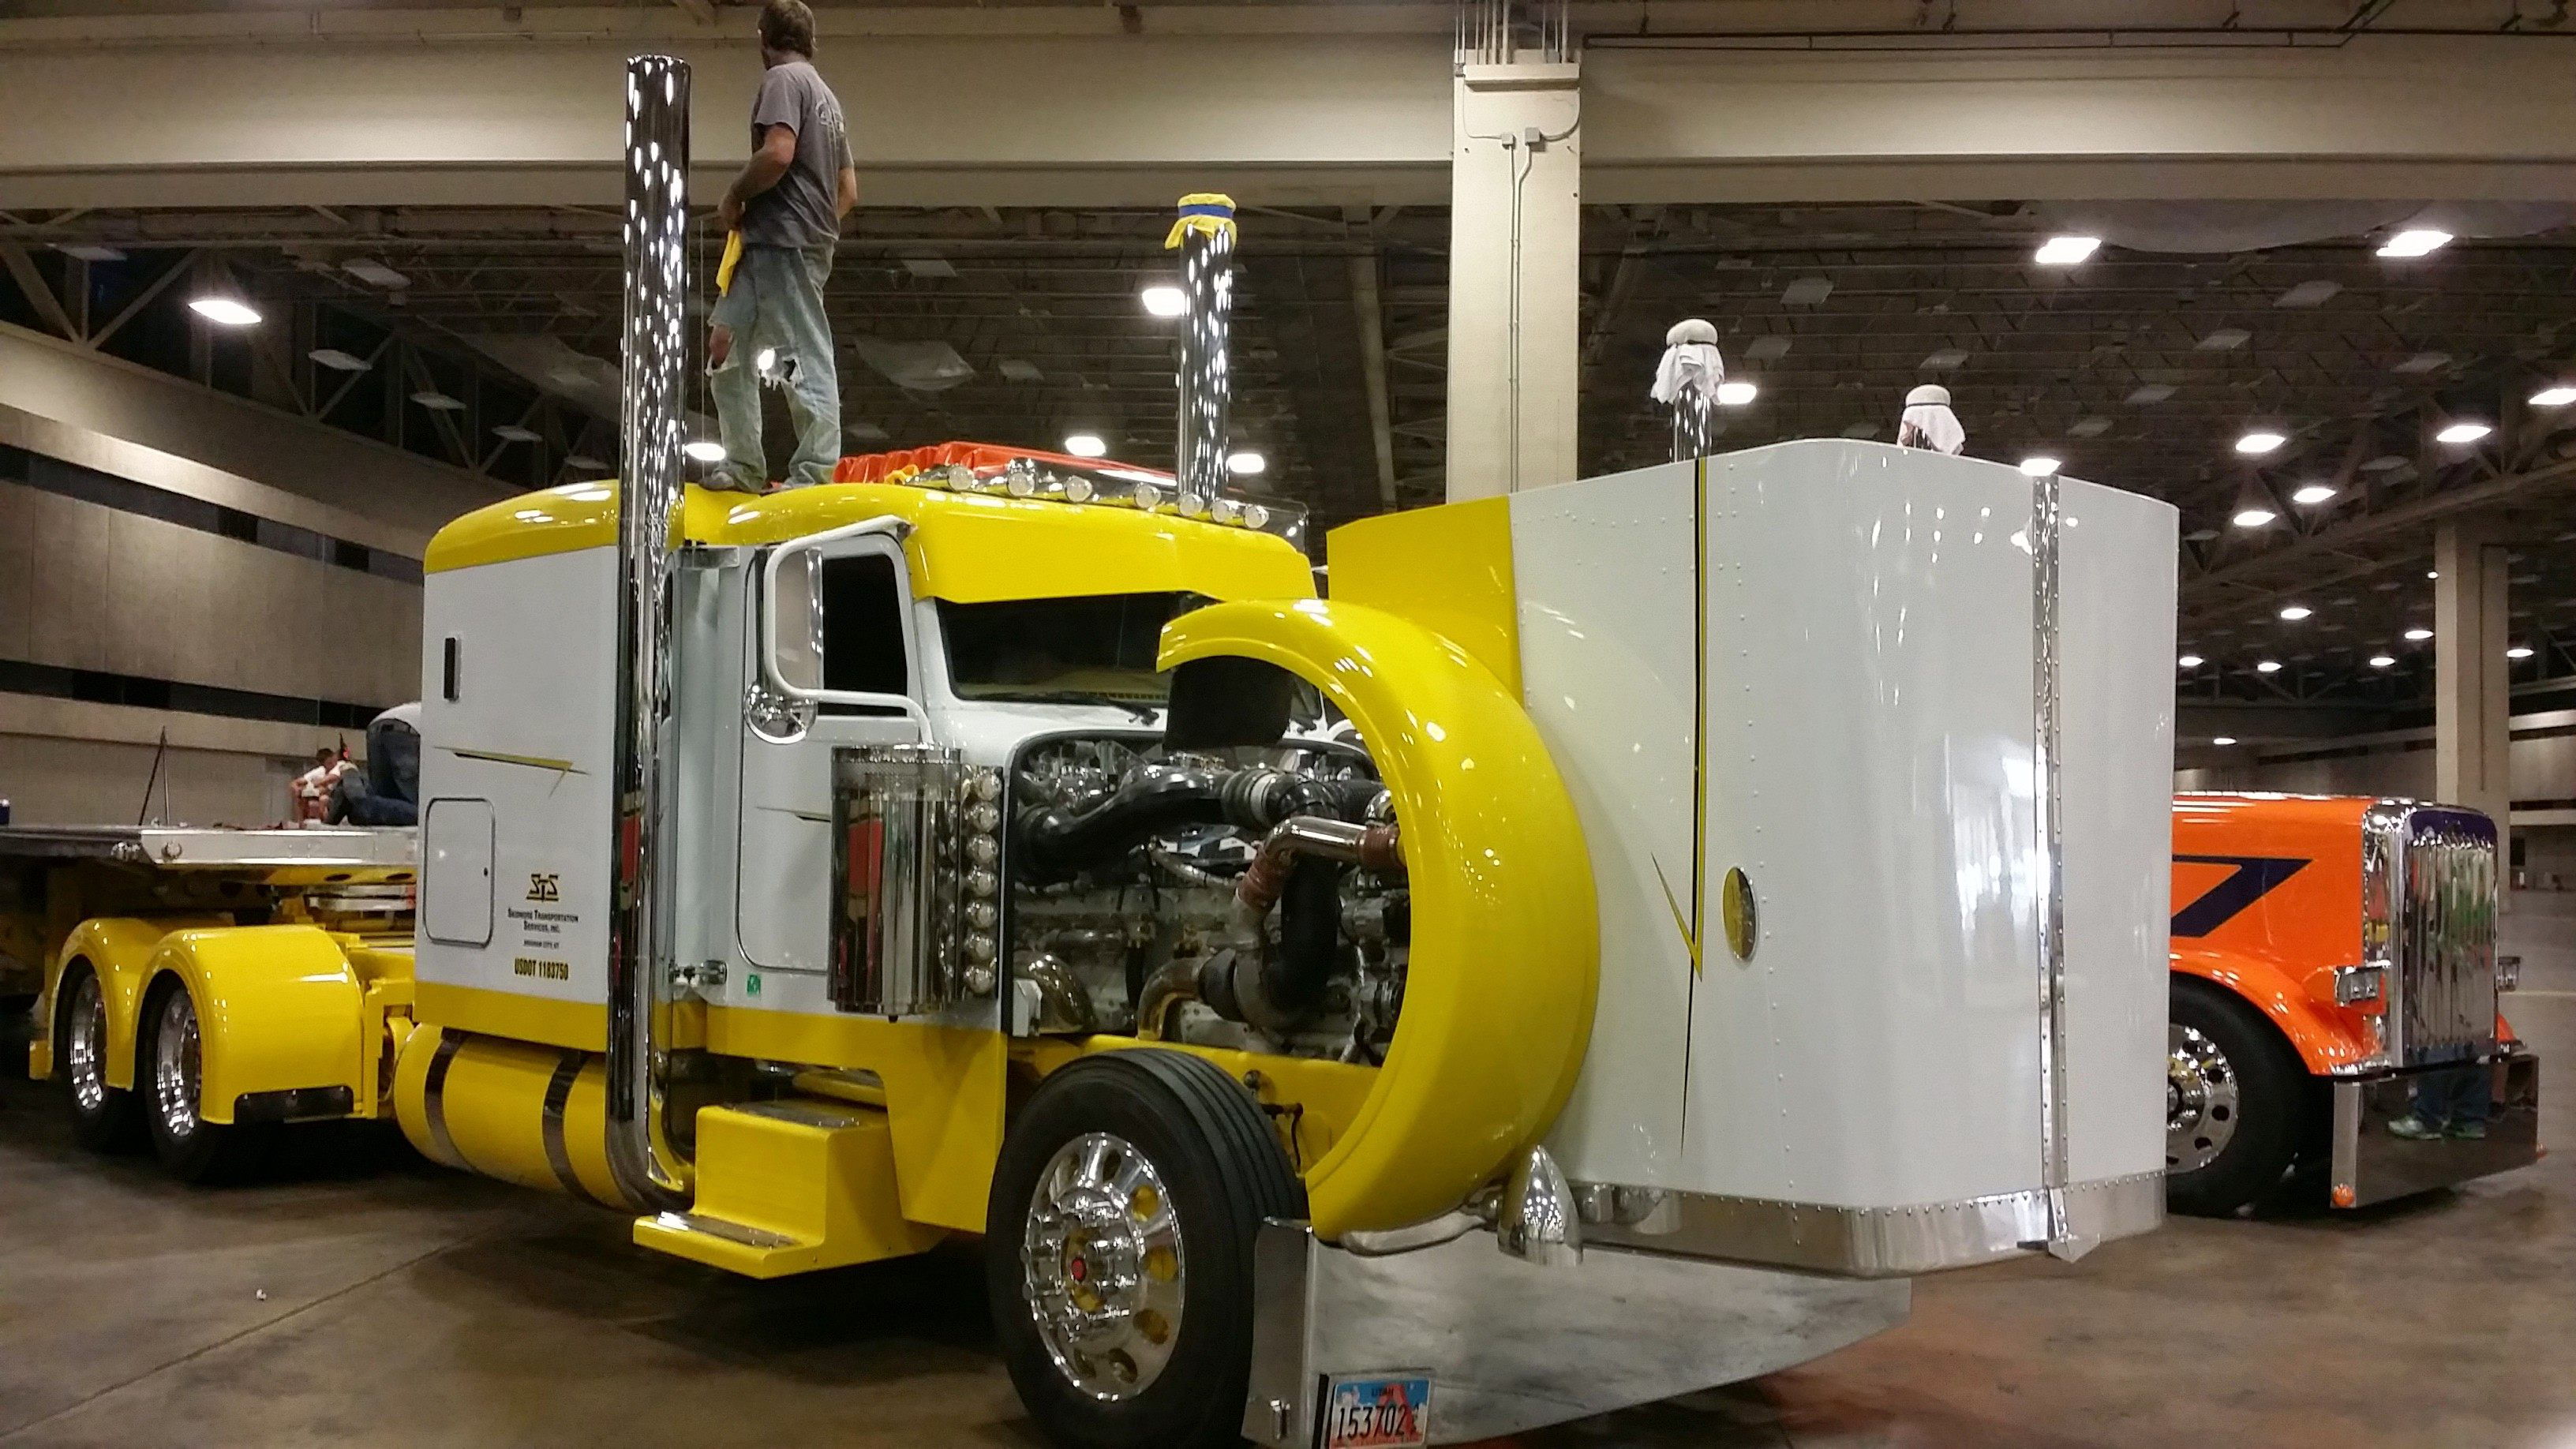 Josh Skidmore's 2007 Peterbilt 379, competing in the Limited-Mileage Combo category in the Pride & Polish National Championship.